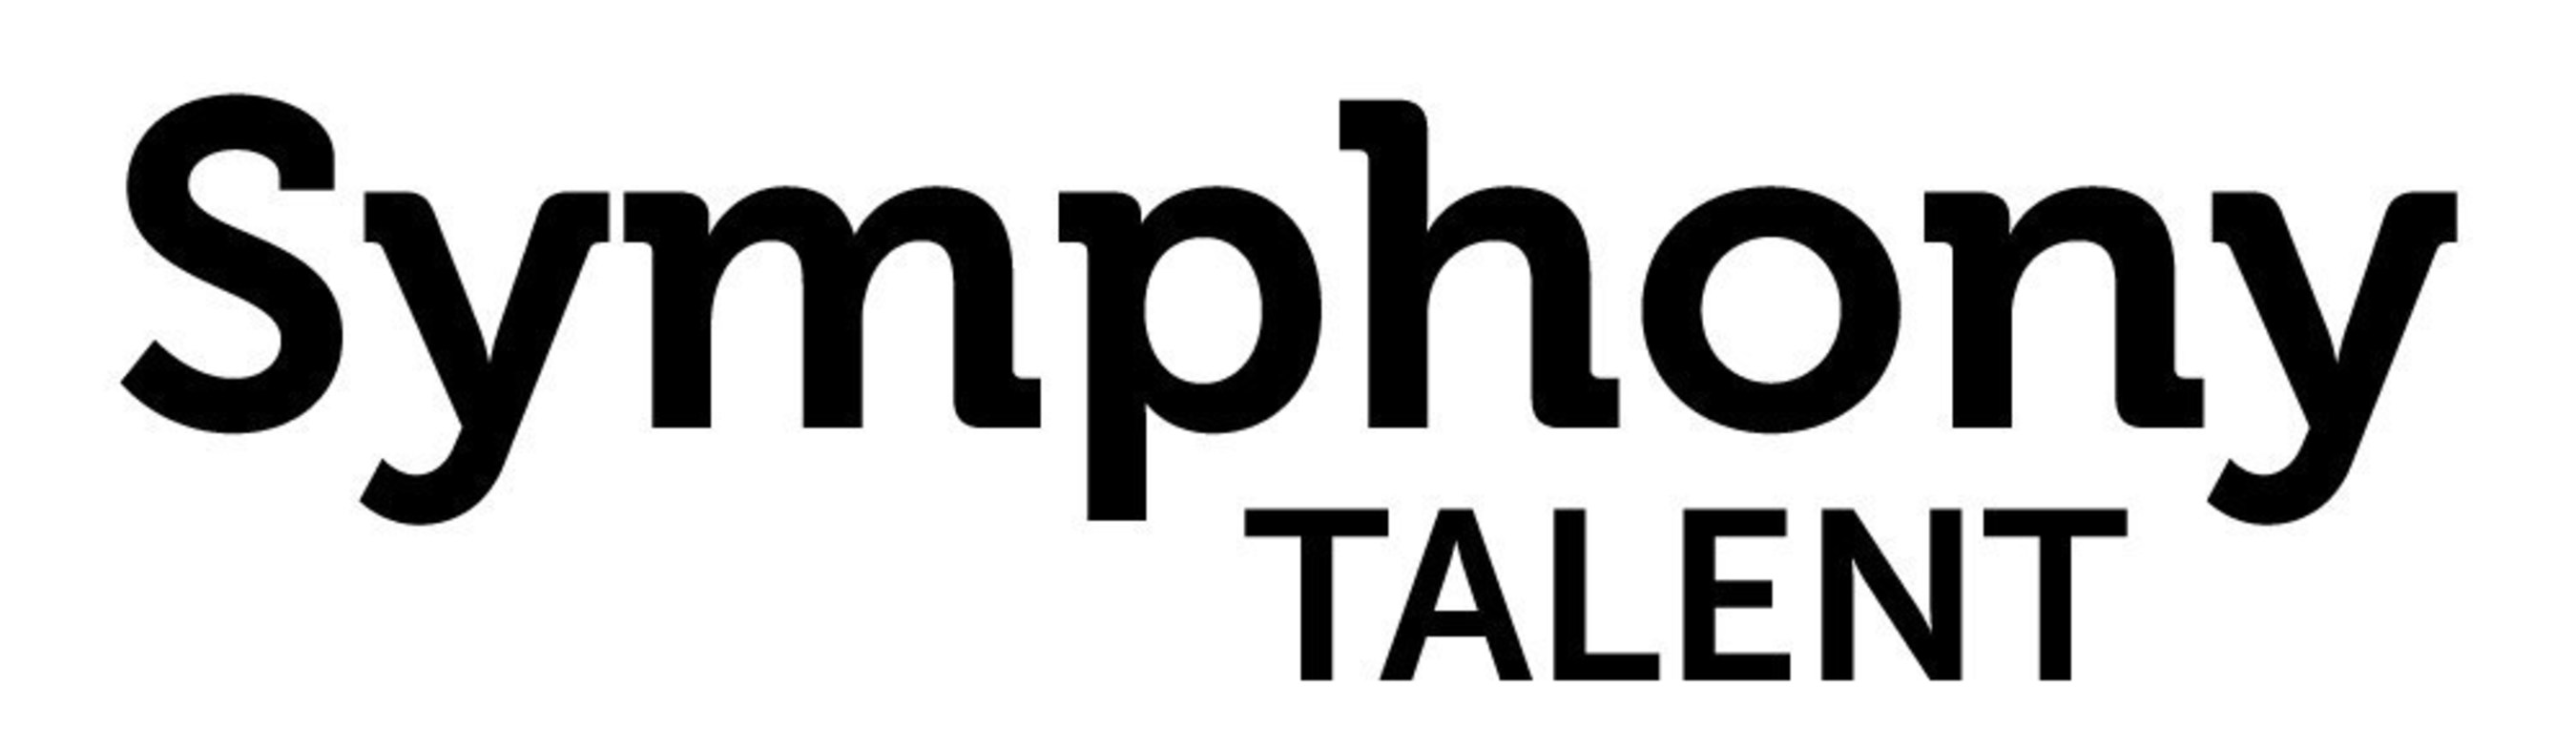 Symphony Technology Group Announces Symphony Talent: A Forward-Thinking Suite of Talent Solutions, Now Available in One Centralized Cloud